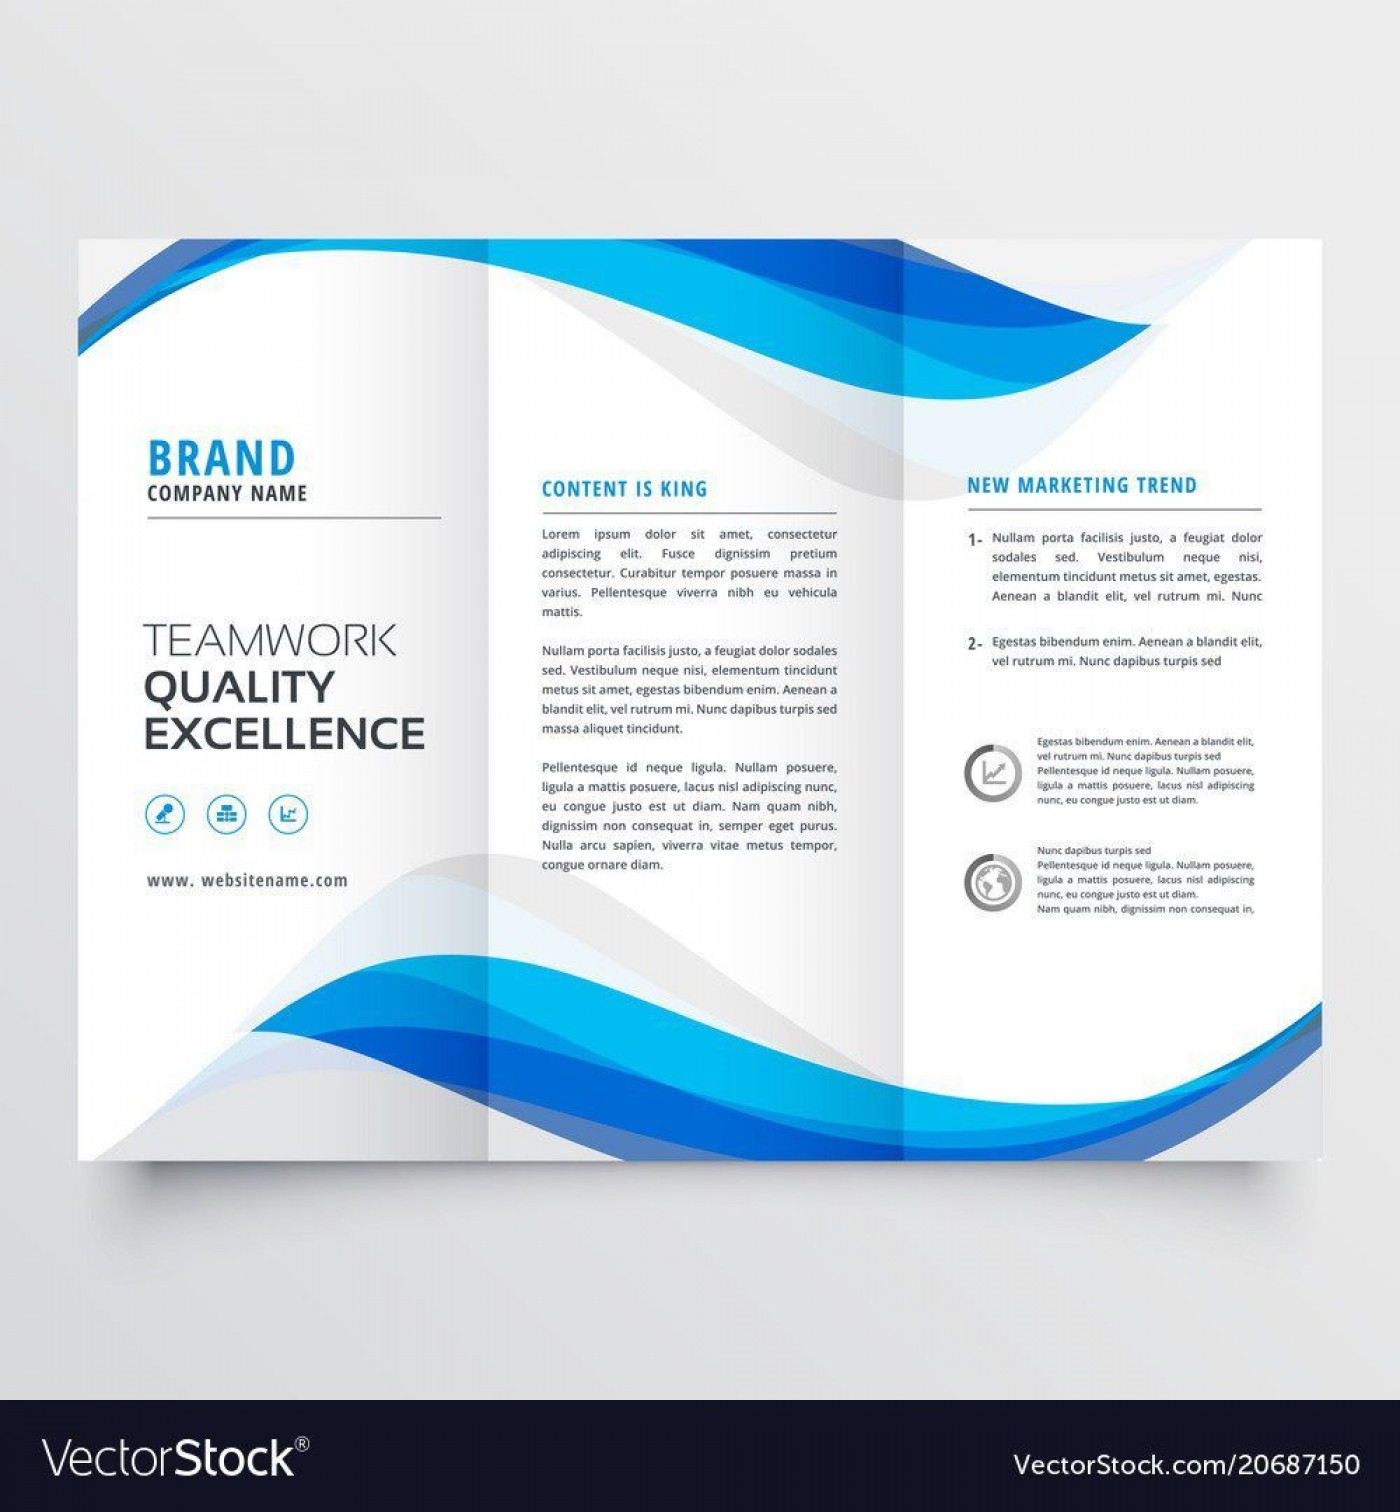 006 Unusual Download Brochure Template For Word 2007 Highest Clarity 1400